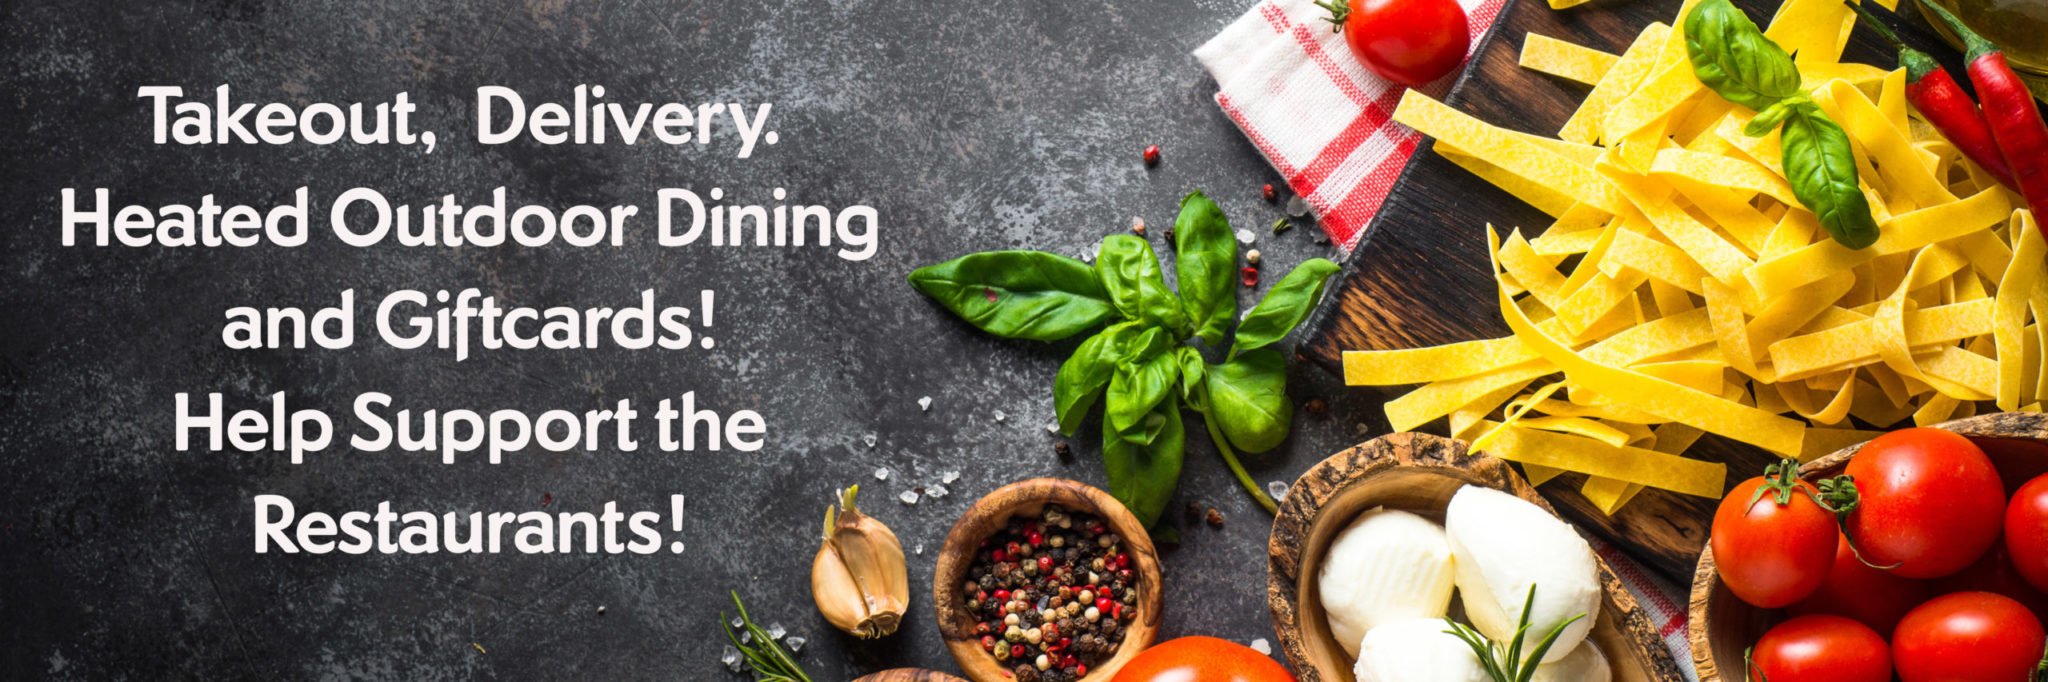 Takeout, Delivery, heated outdoor dining and gift cards.